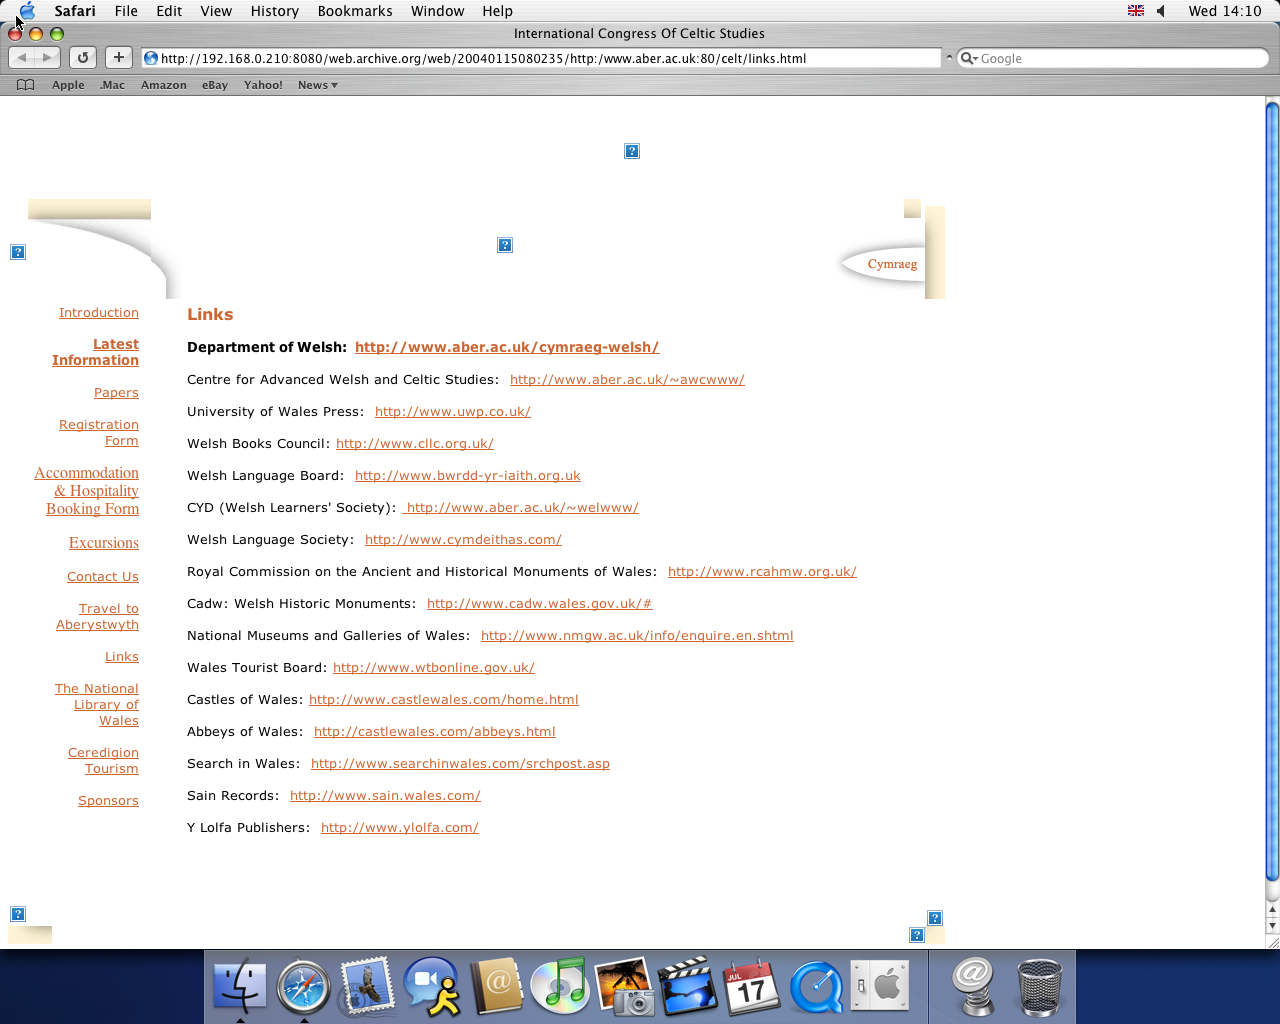 OS X 10.3 PPC with Safari 1.1 displaying a page from University of Aberystwyth archived at January 15, 2004 at 08:02:35